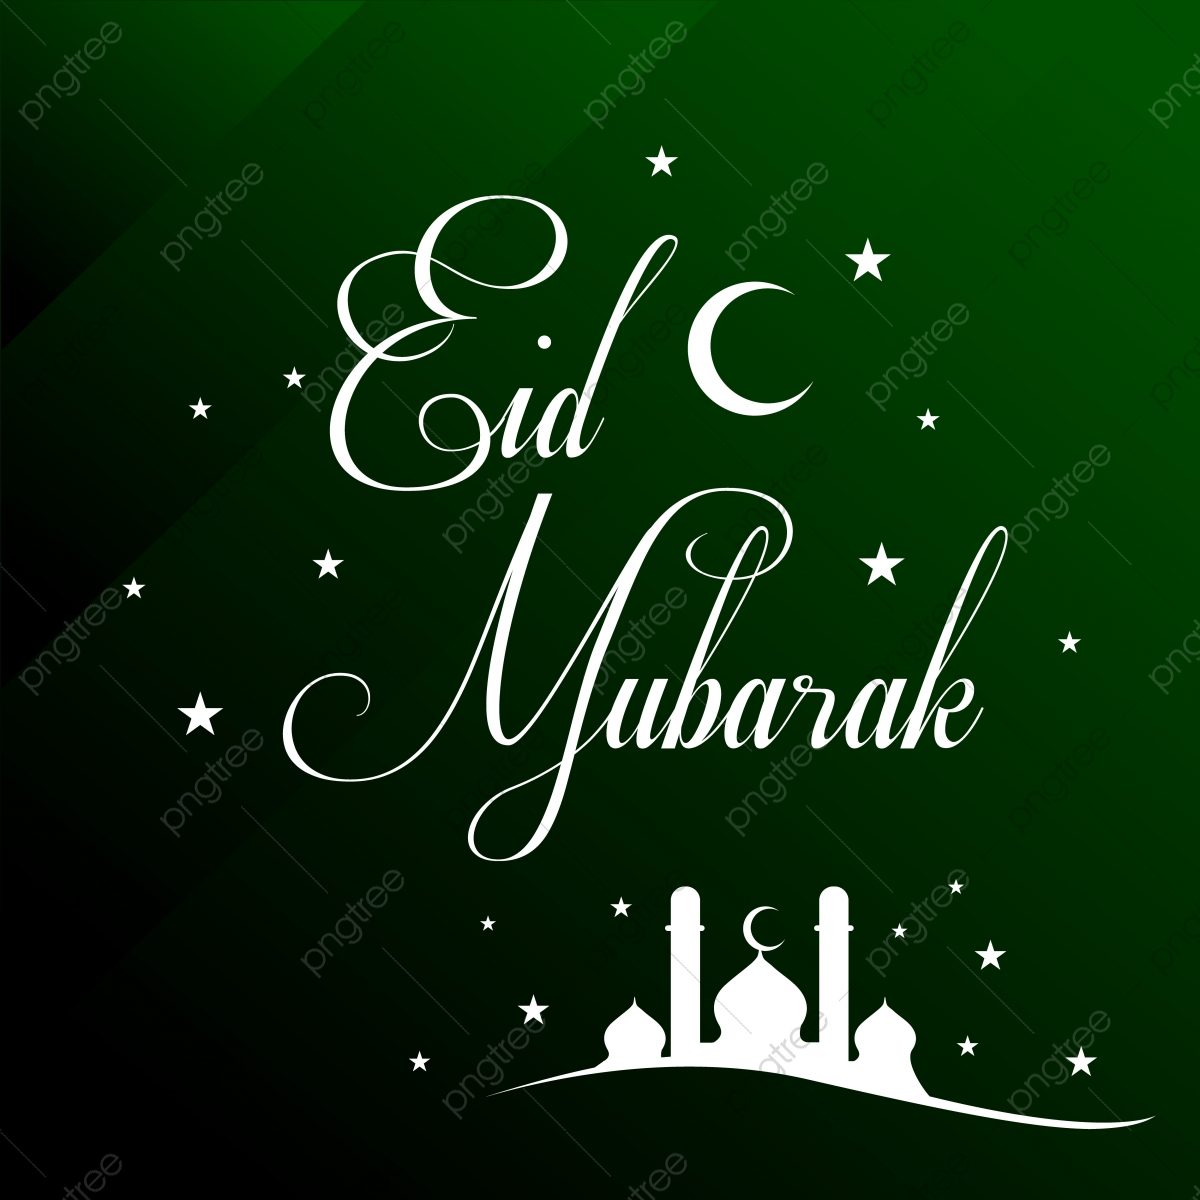 Islamic Holy Eid Al Fitr Eid Mubarak Celebrations Greetings Vect Allah Arabic Art Png And Vector With Transparent Background For Free Download